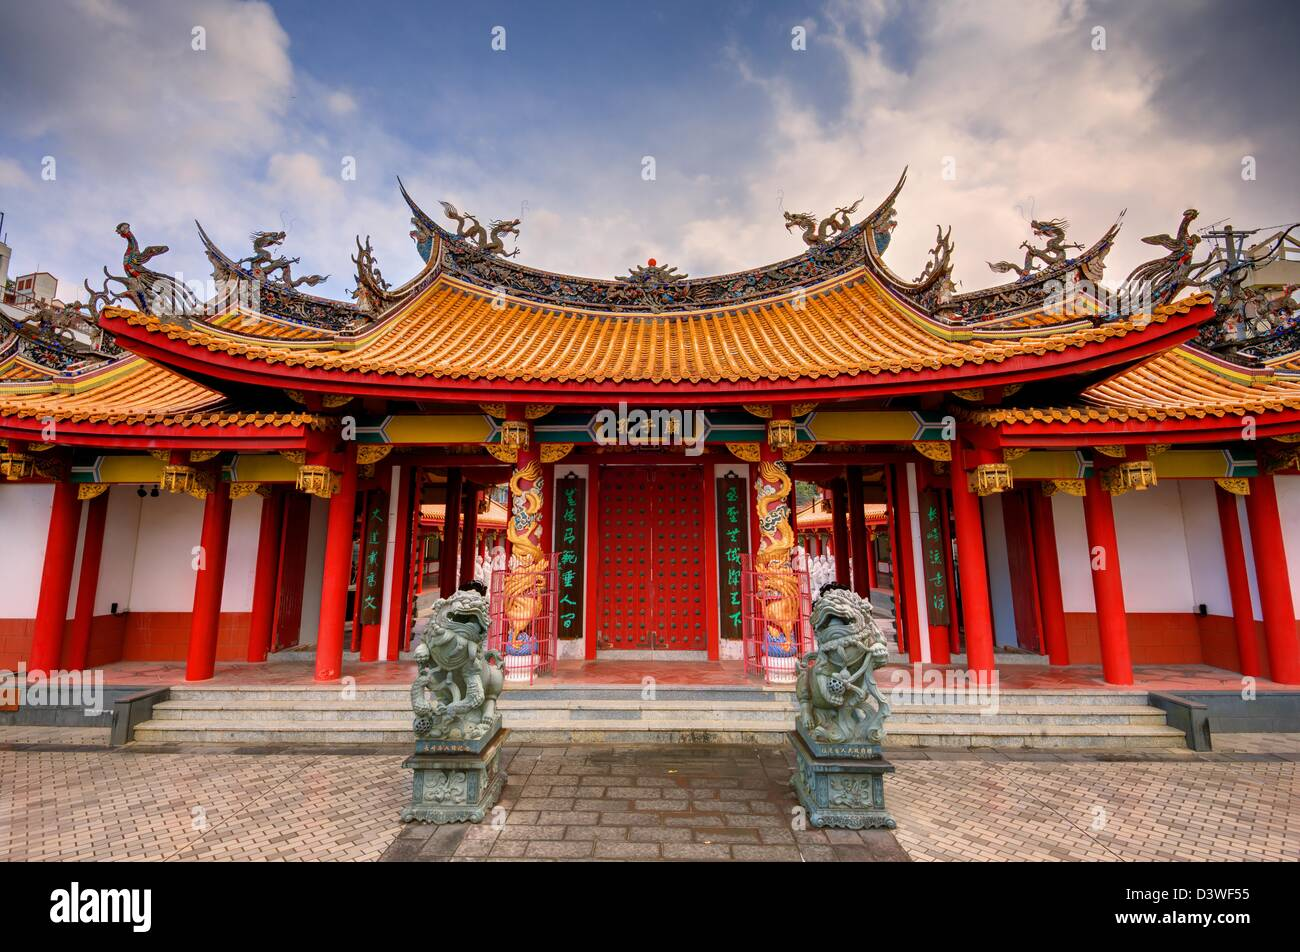 Confucius Shrine in Nagasaki, Japan. - Stock Image